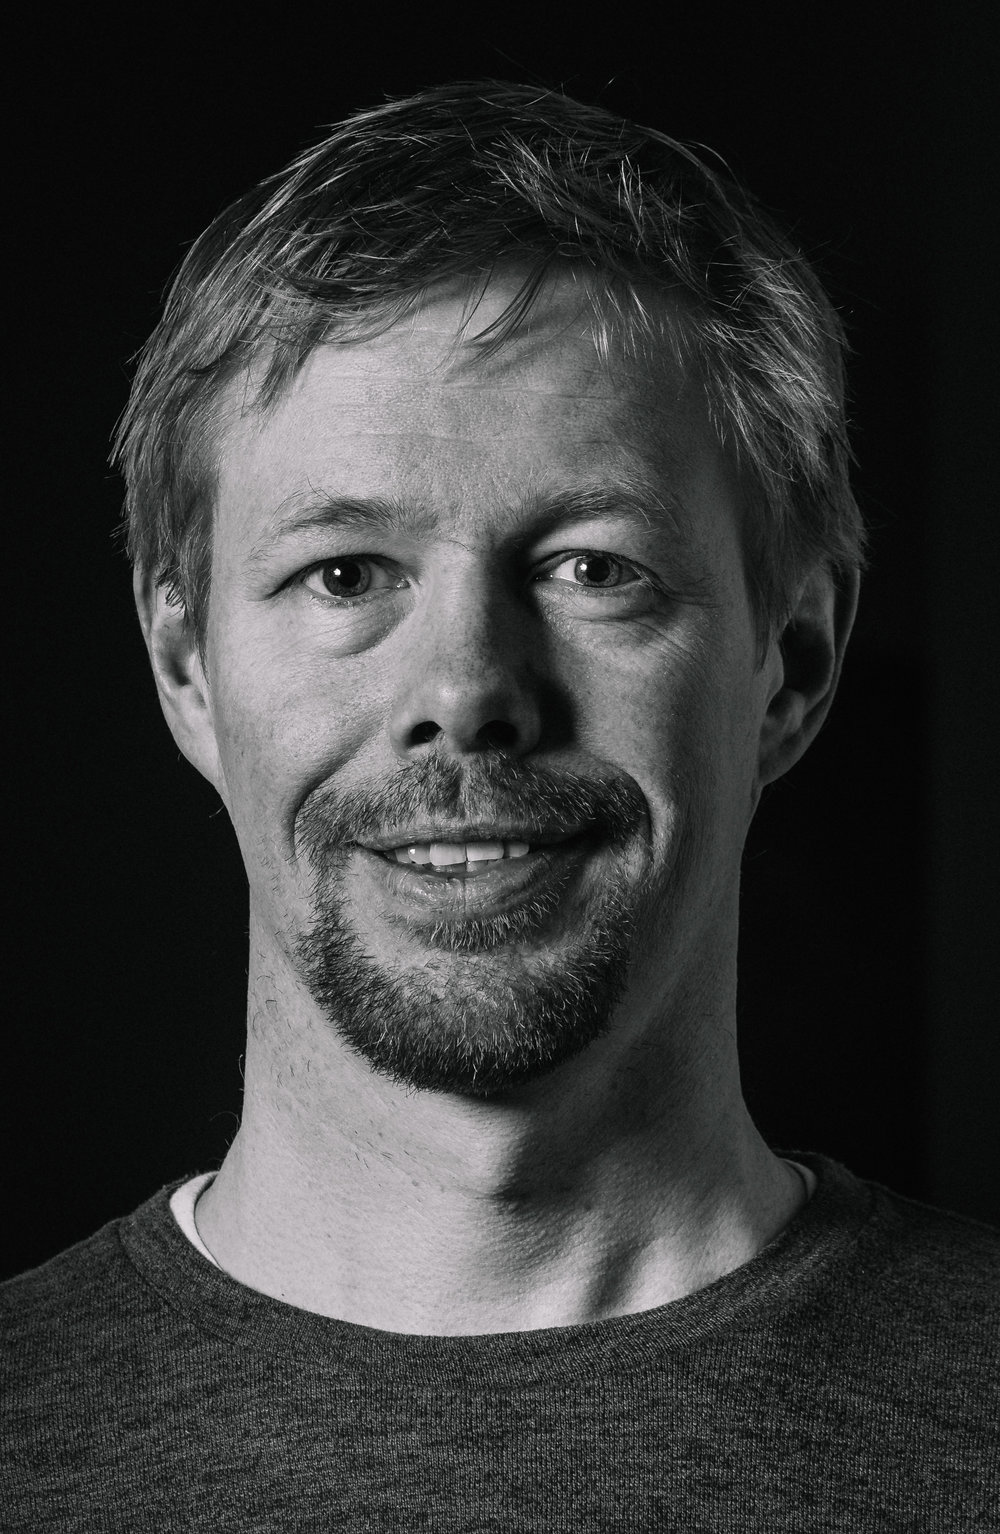 Birgir Magnusson Mechanical designer. Previously Senior Designer at Microsoft and Principal Packaging Designer at Nokia. Cand. Scient., Mechanical and Industrial Engineering, University of Iceland. UX student at Tampere University.